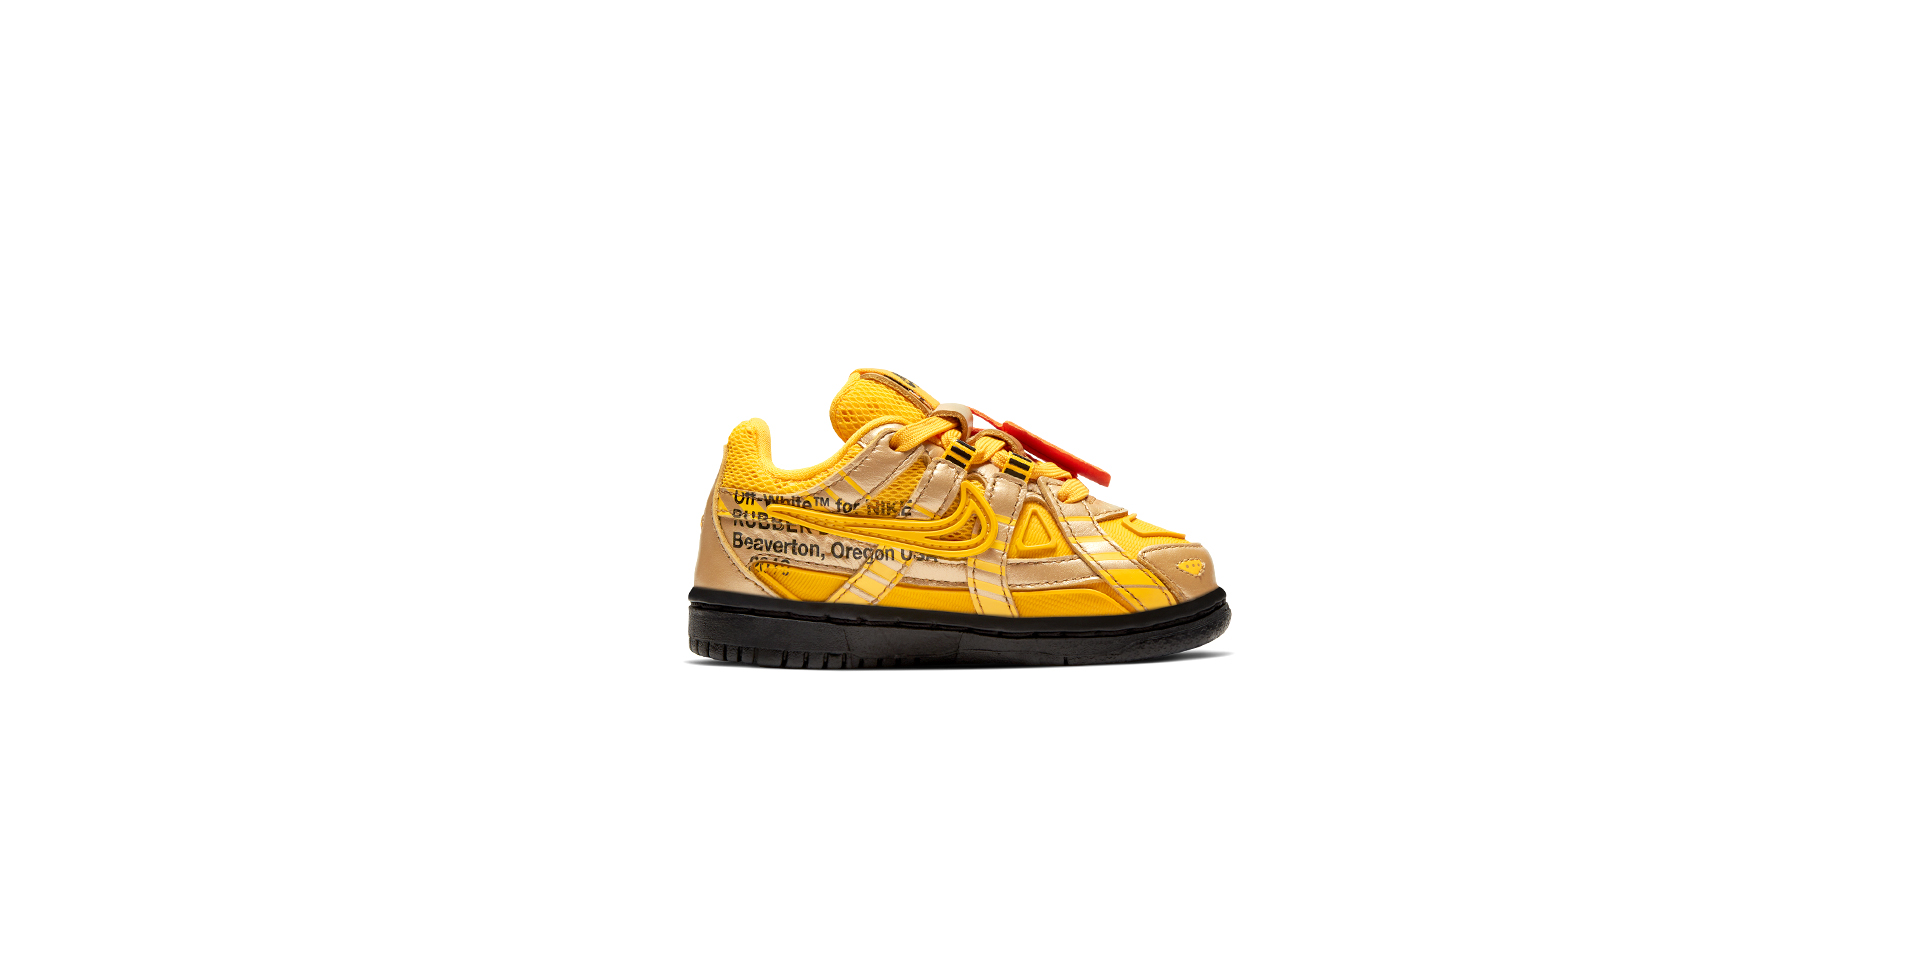 NIKE RUBBER DUNK X OFF-WHITE (TODDLER) - UNI GOLD/BLK